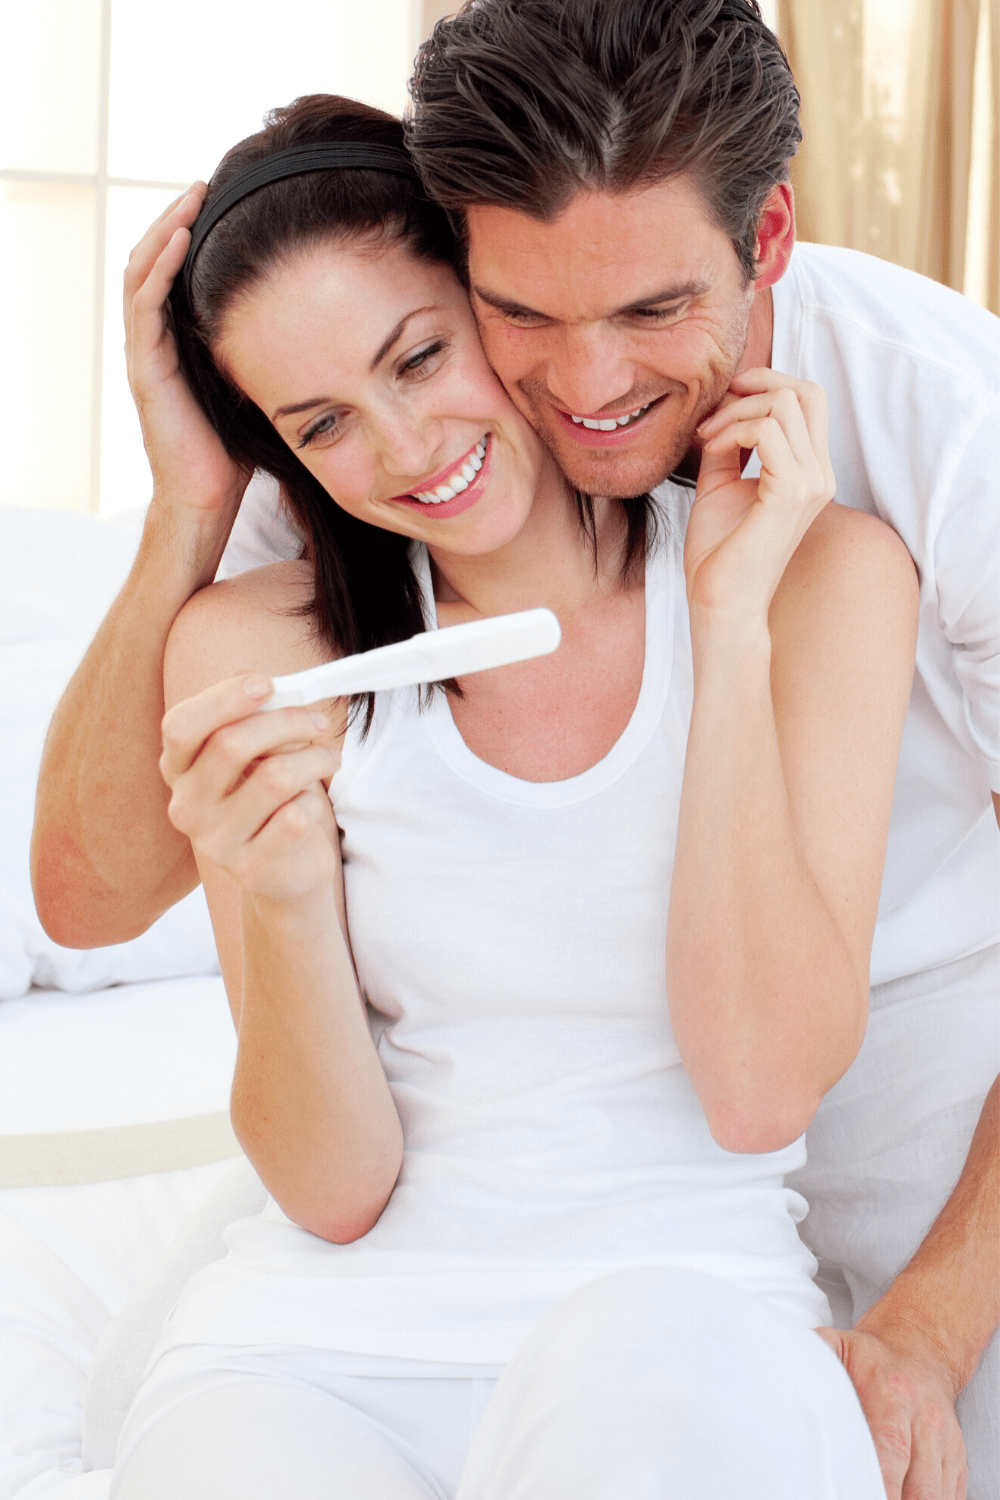 26 Sweet Ways to Tell Your Husband You're Pregnant